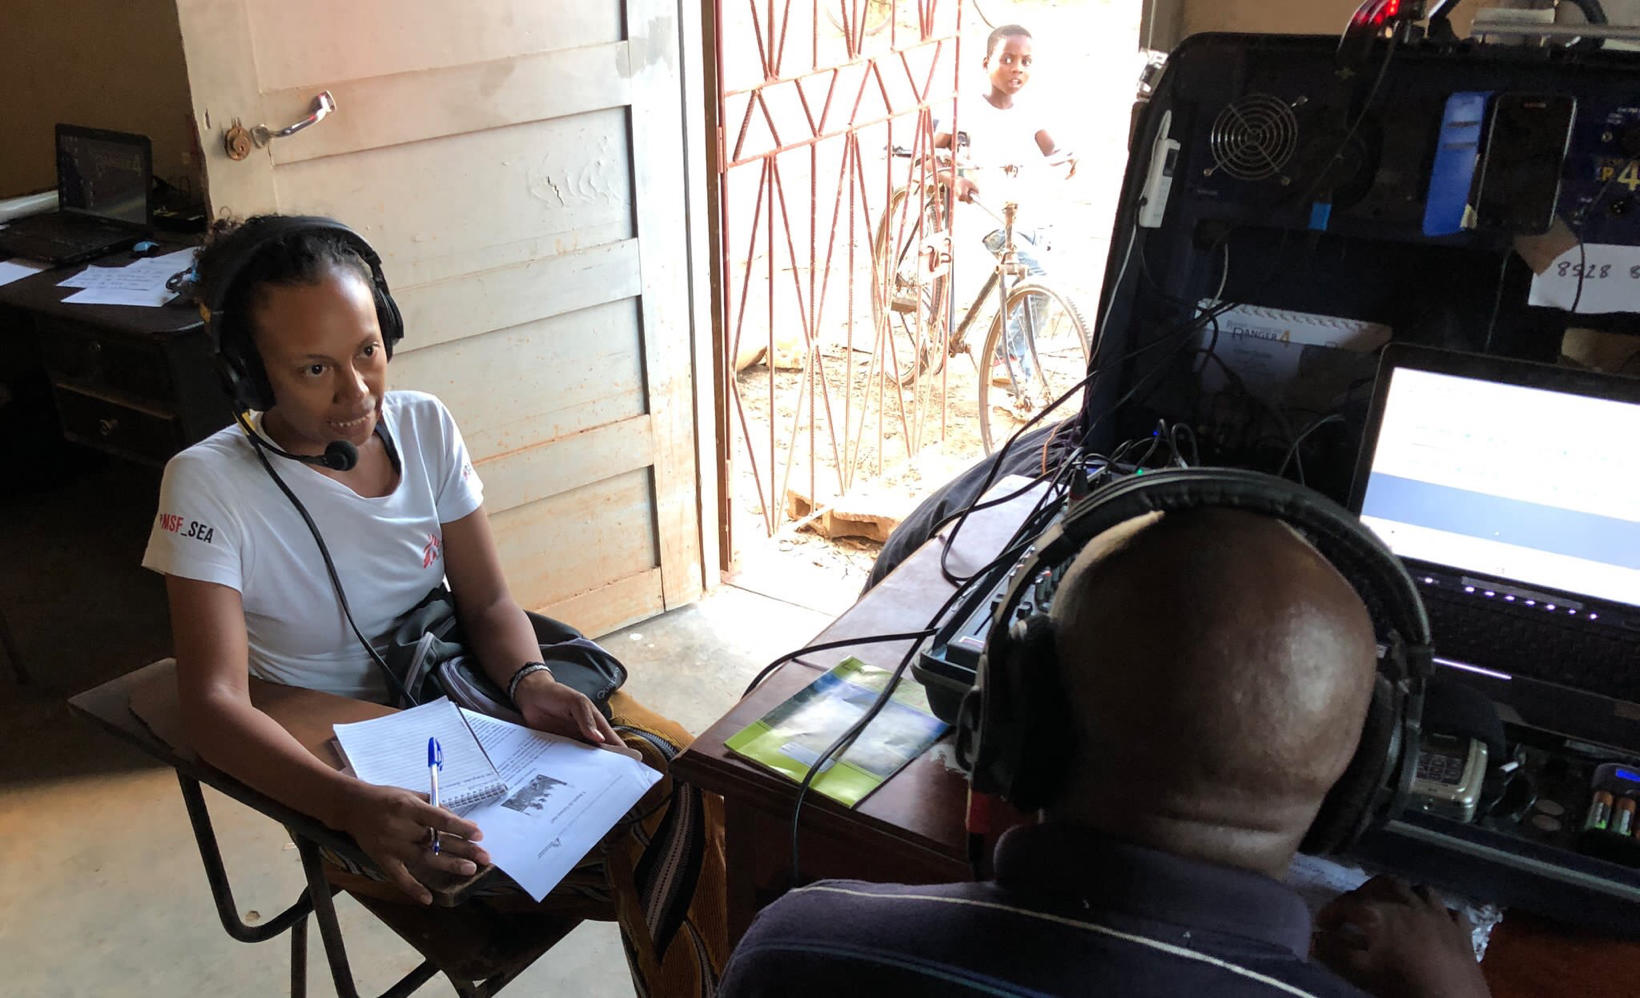 MSF psychologist gives community advice in temporary Buzi FM studio. March 2019. (Photo credit: HCR)